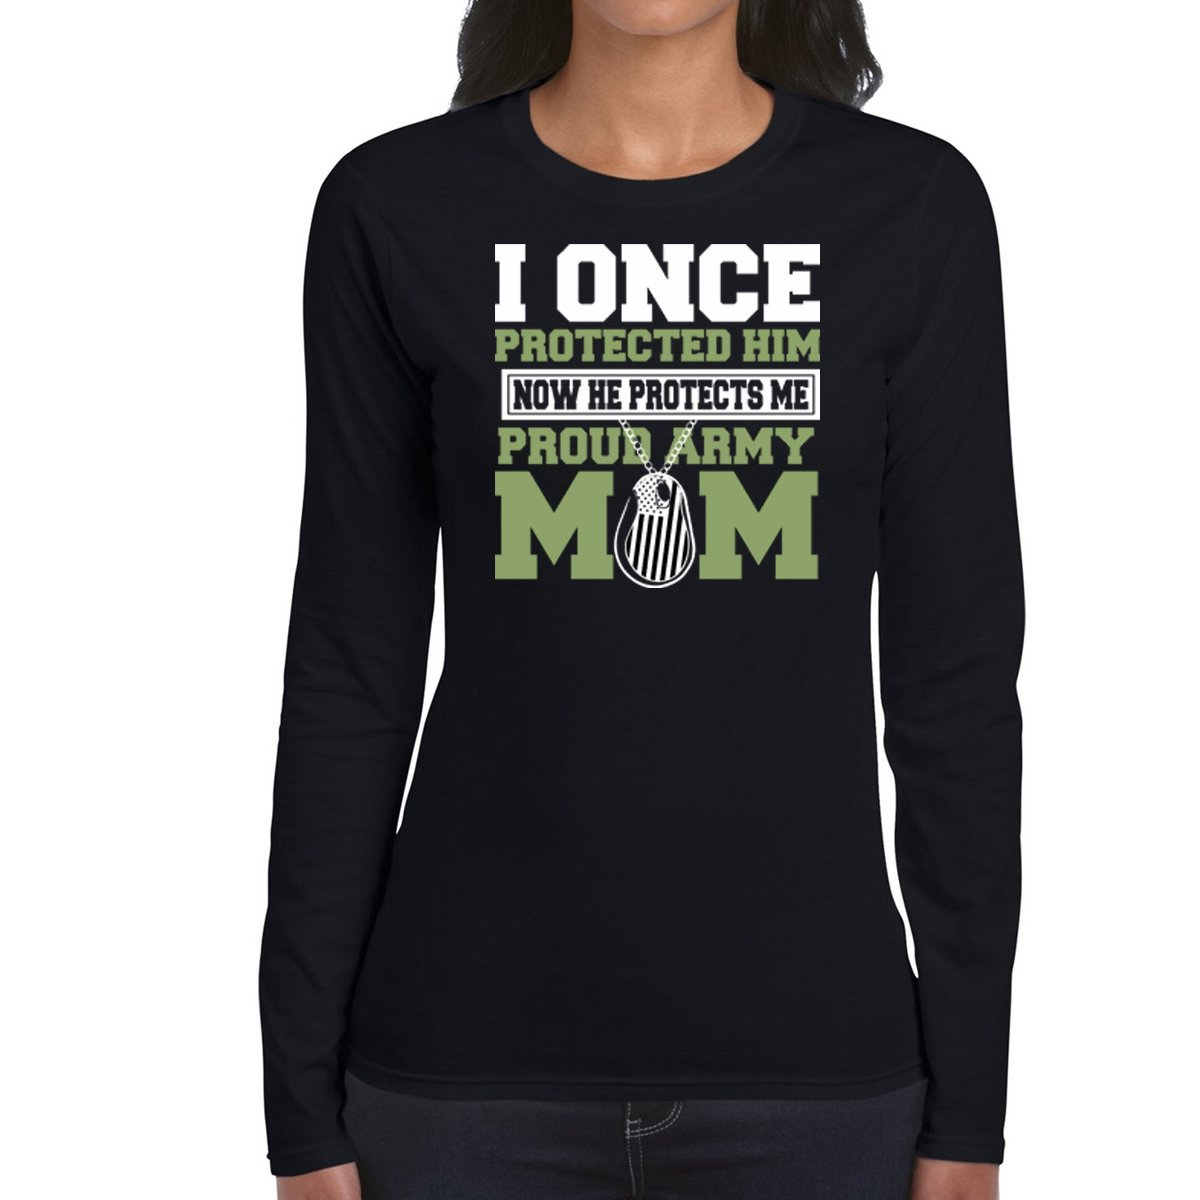 Amazon.com: AW Fashions I Once Protected him Now he Protects me Proud Army mom - Womens Long Sleeve Tee: Clothing